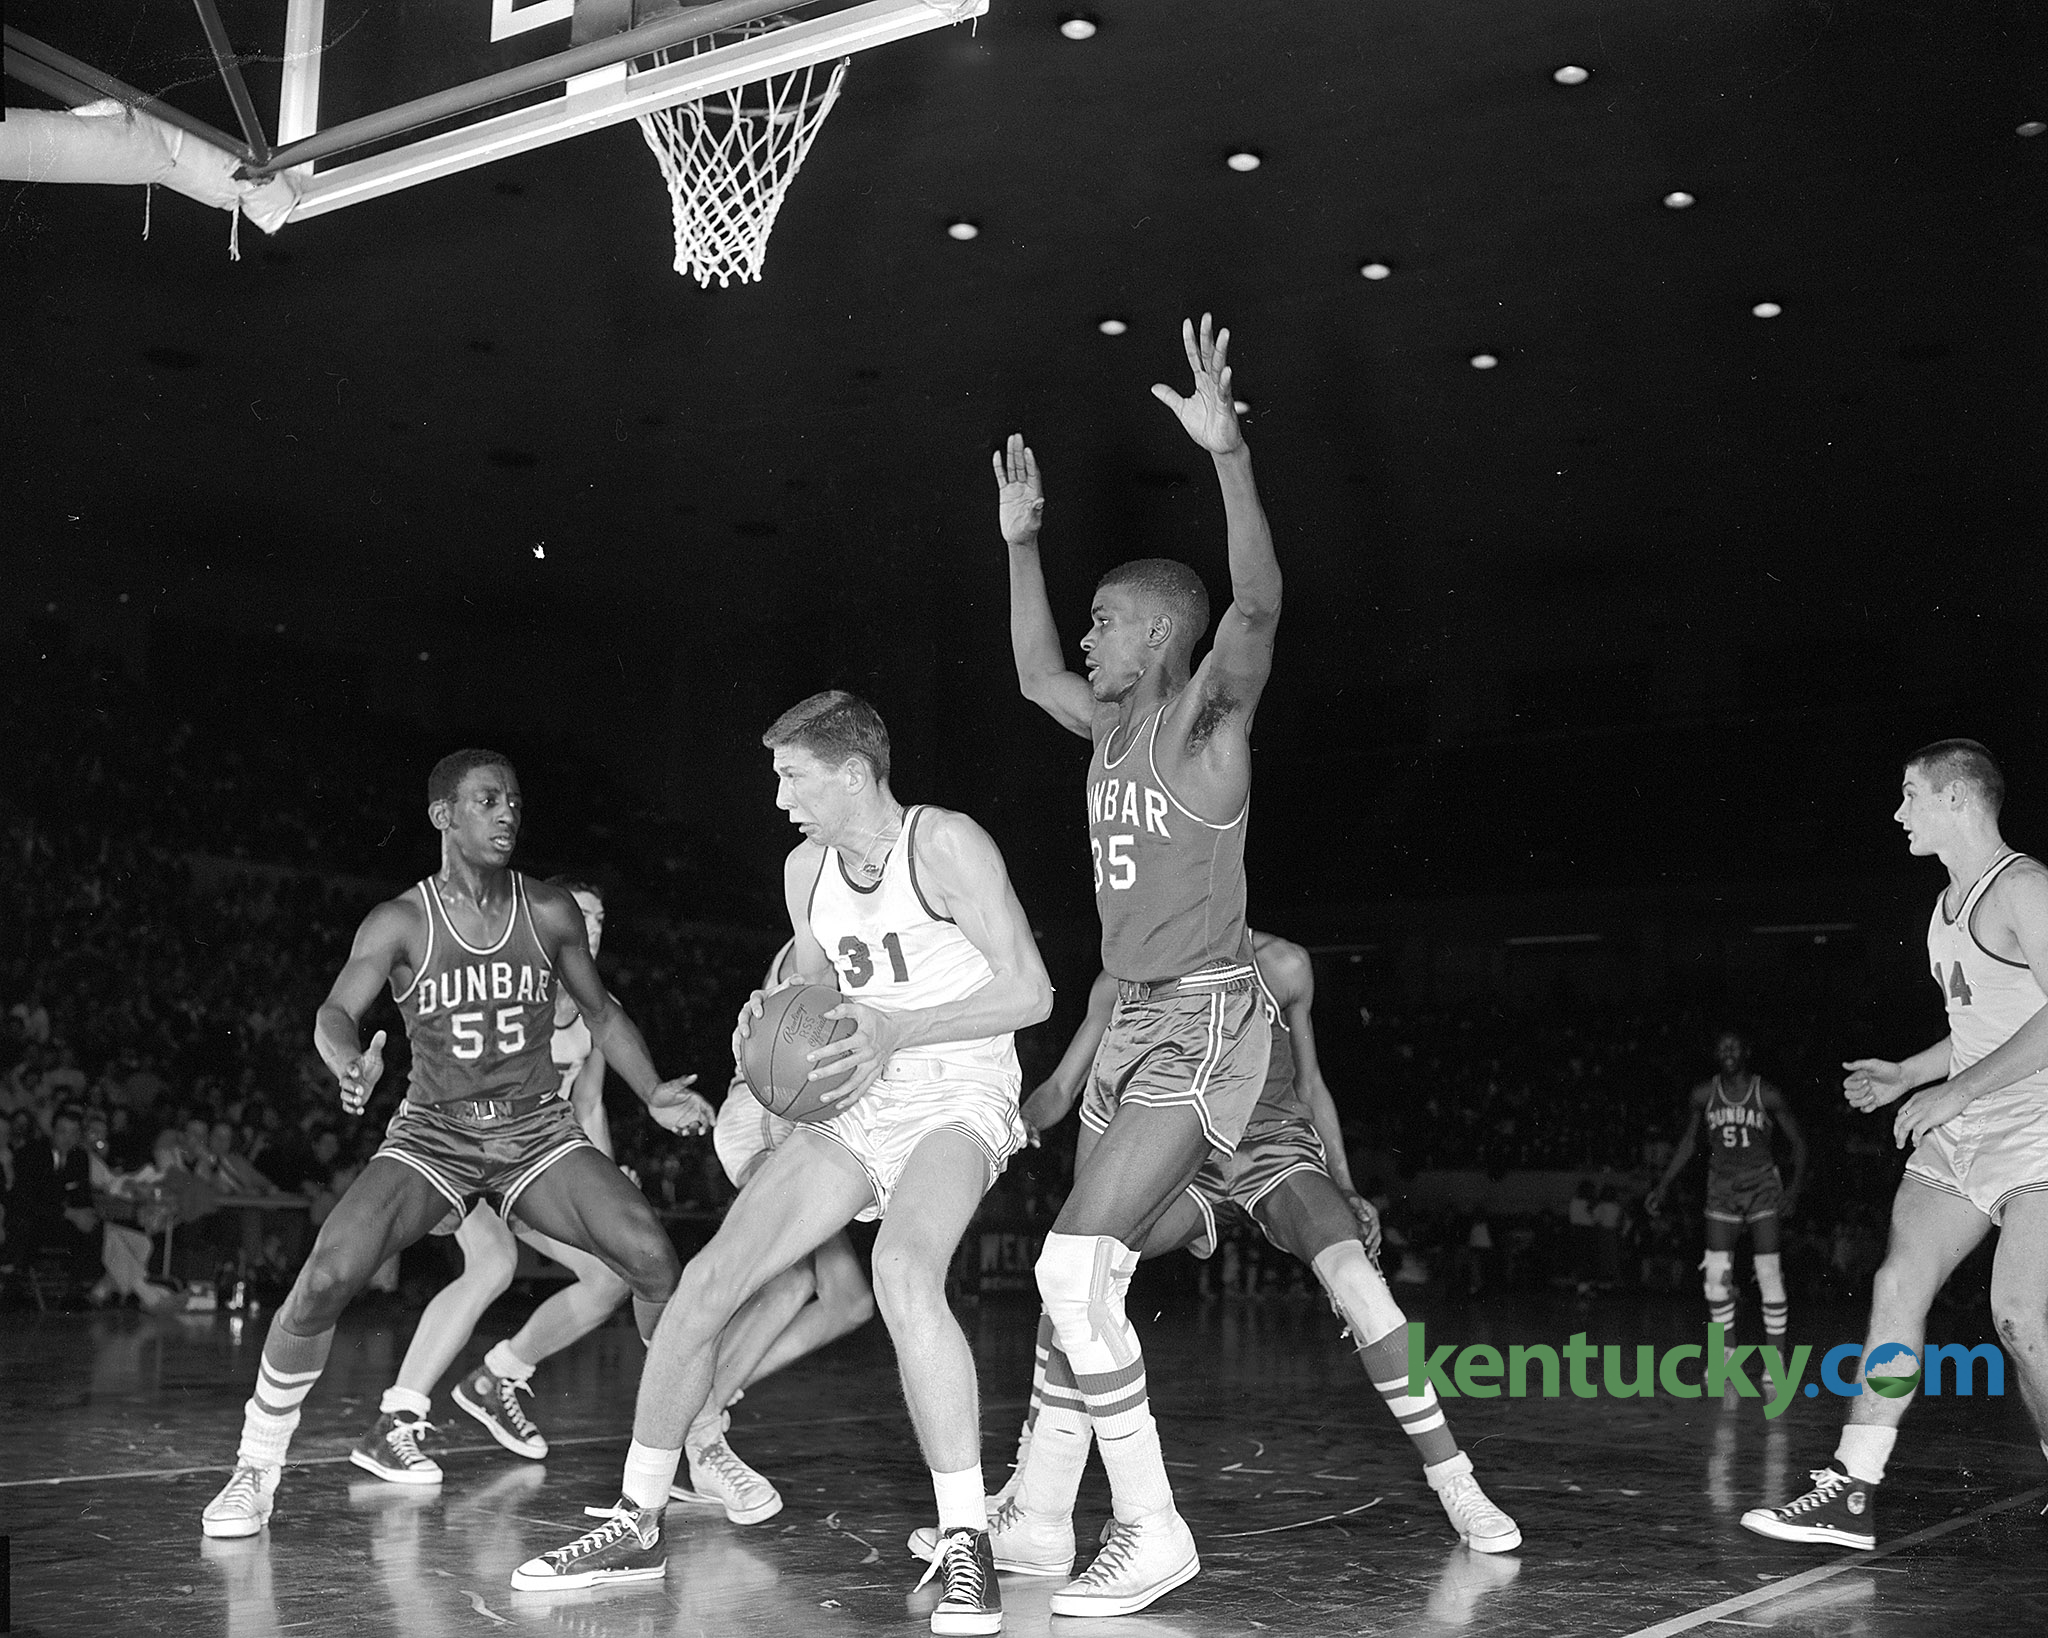 11th Region basketball tournament 1959